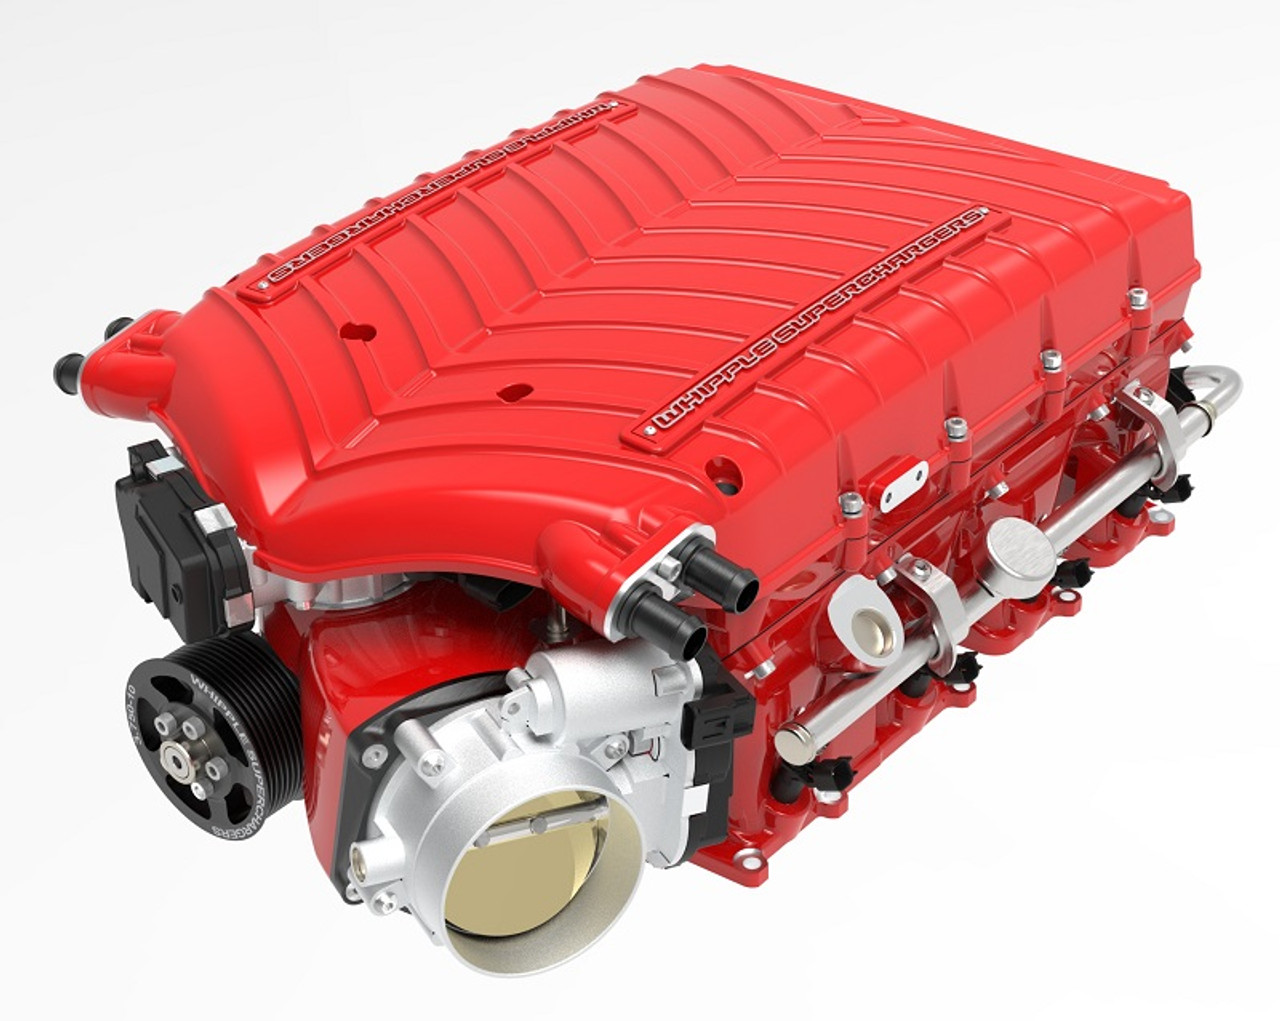 Whipple Superchargers Stage 1 Competition Kit 3.0L Gen 5 (Hellcat/Trackhawk/Demon/Redeye) WK-3500-S1-30